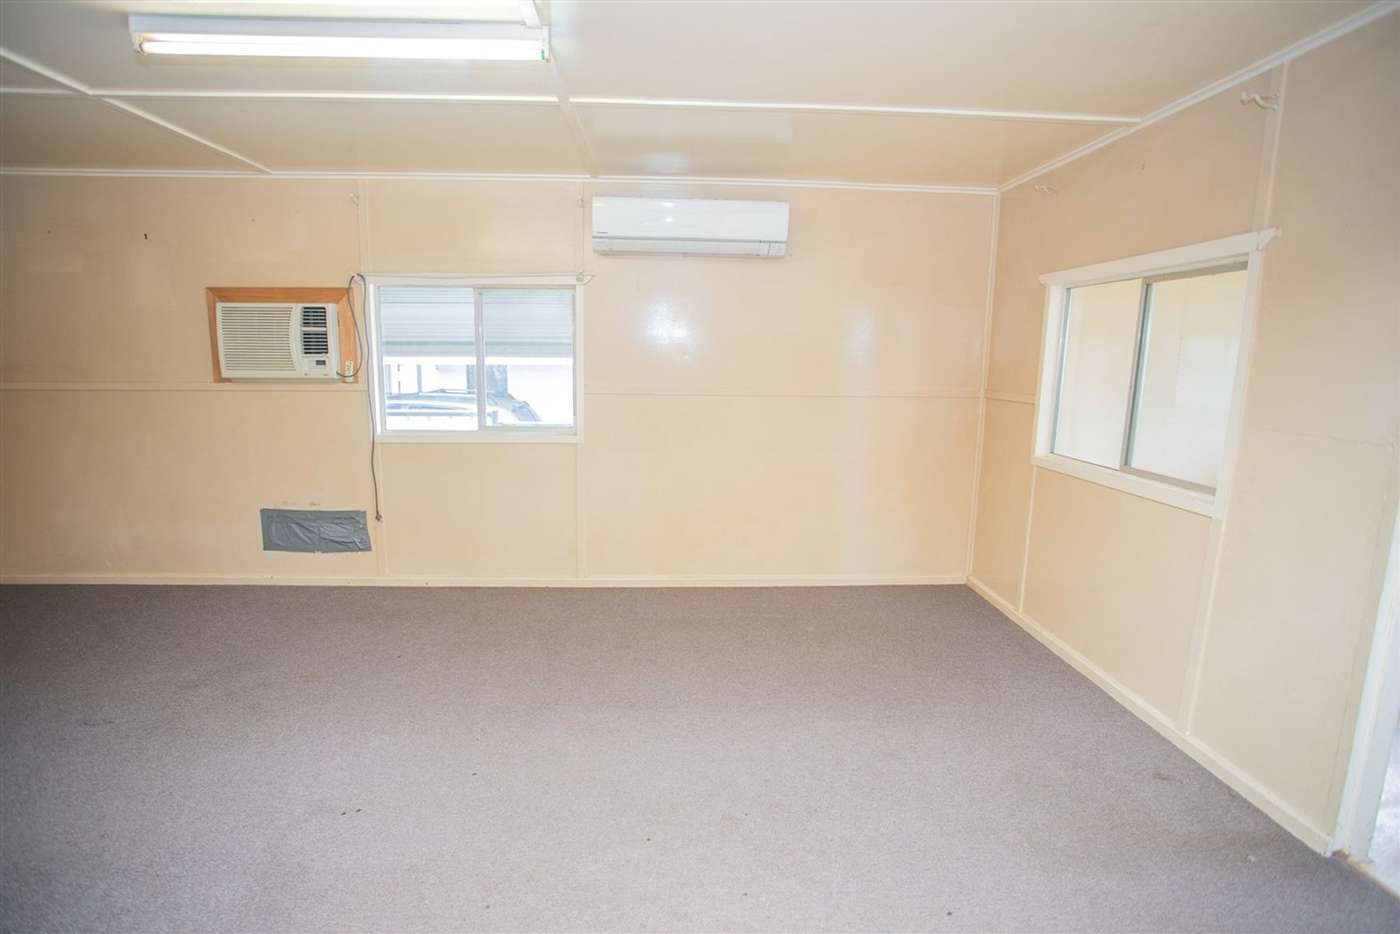 Sixth view of Homely house listing, 8 Birkett Street, Chinchilla QLD 4413